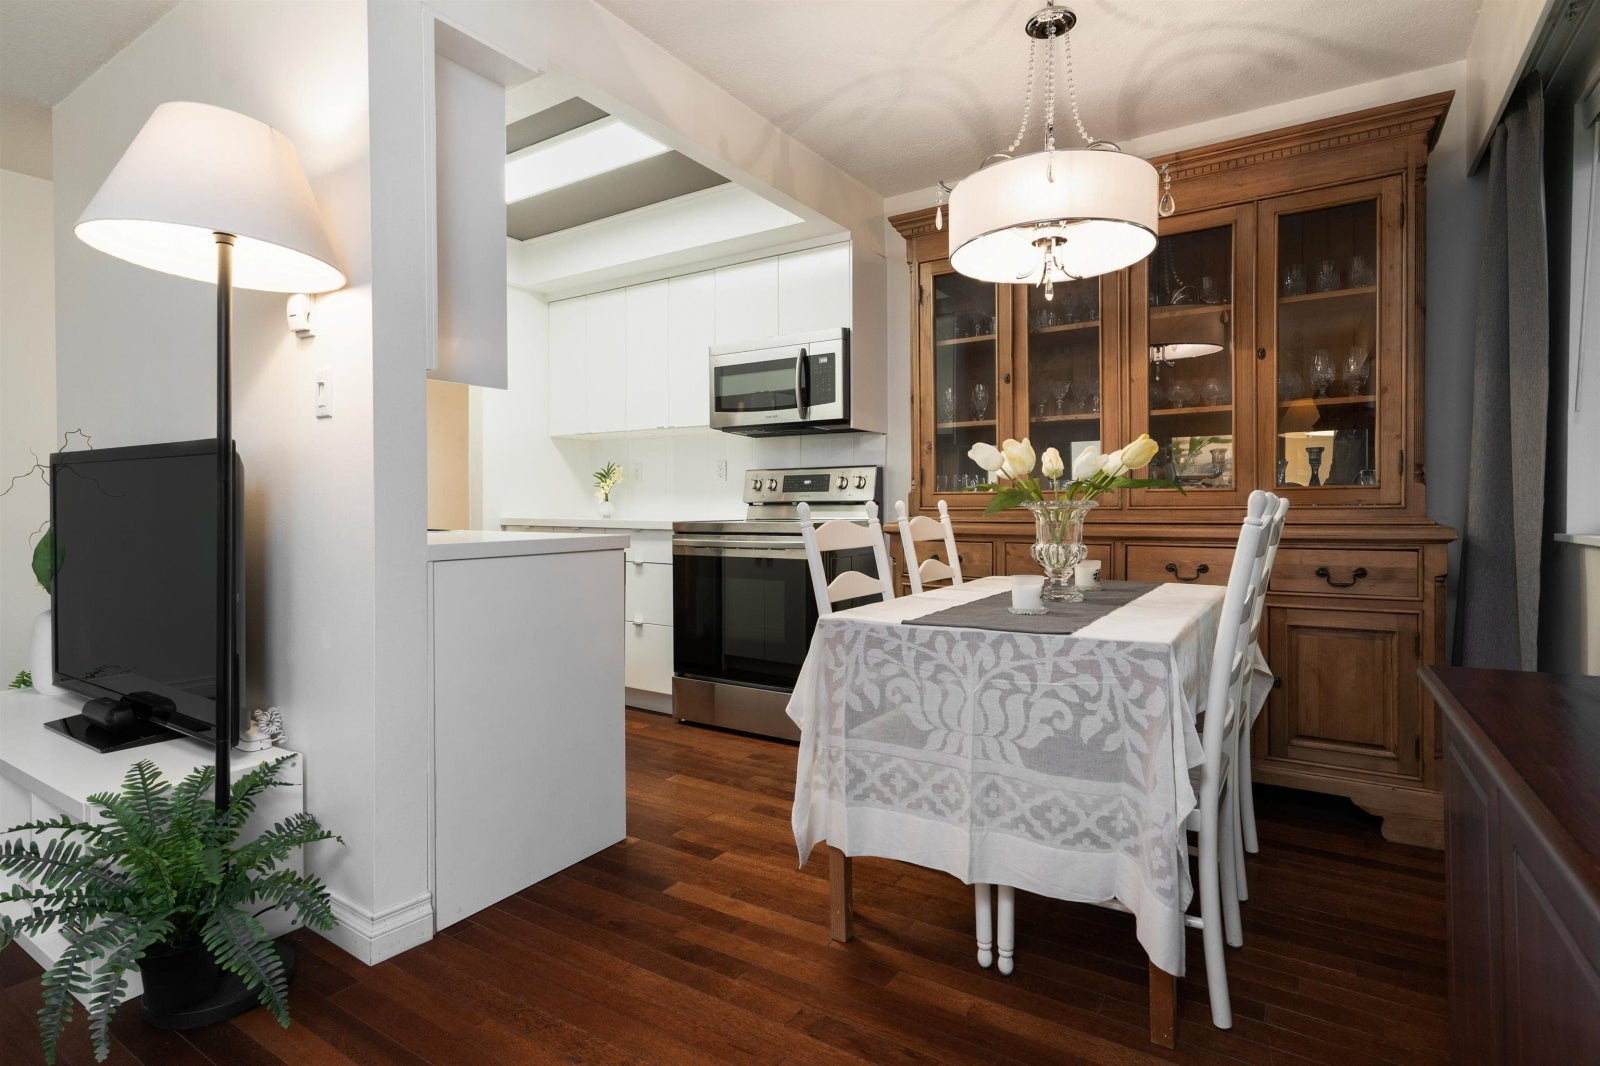 107 123 E 19TH STREET - Central Lonsdale Apartment/Condo for sale, 1 Bedroom (R2610372) #12